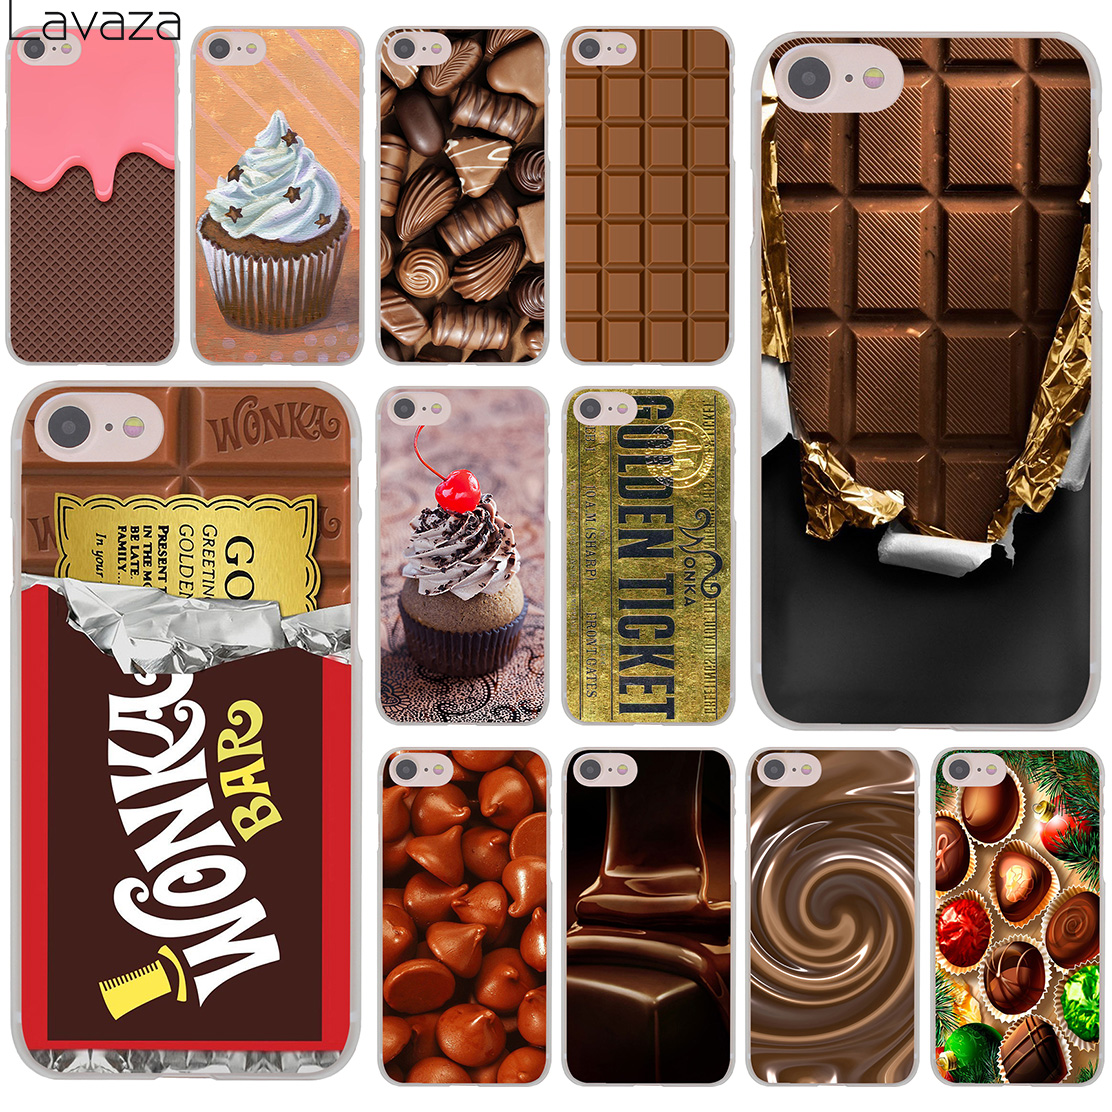 Compare Prices on Iphone Chocolate Bar- Online Shopping/Buy Low ...